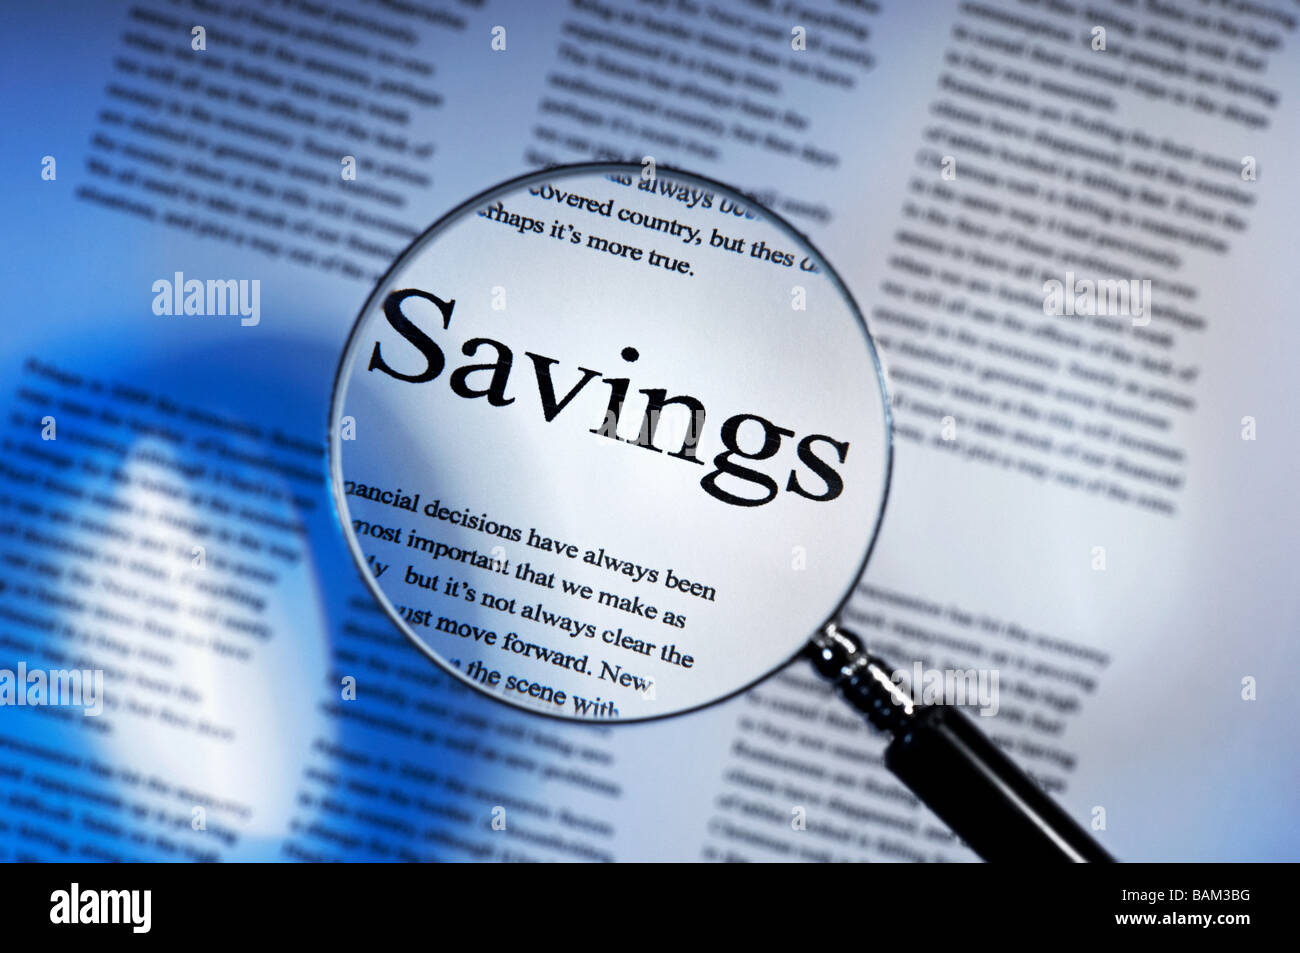 Word savings under magnifying glass - Stock Image